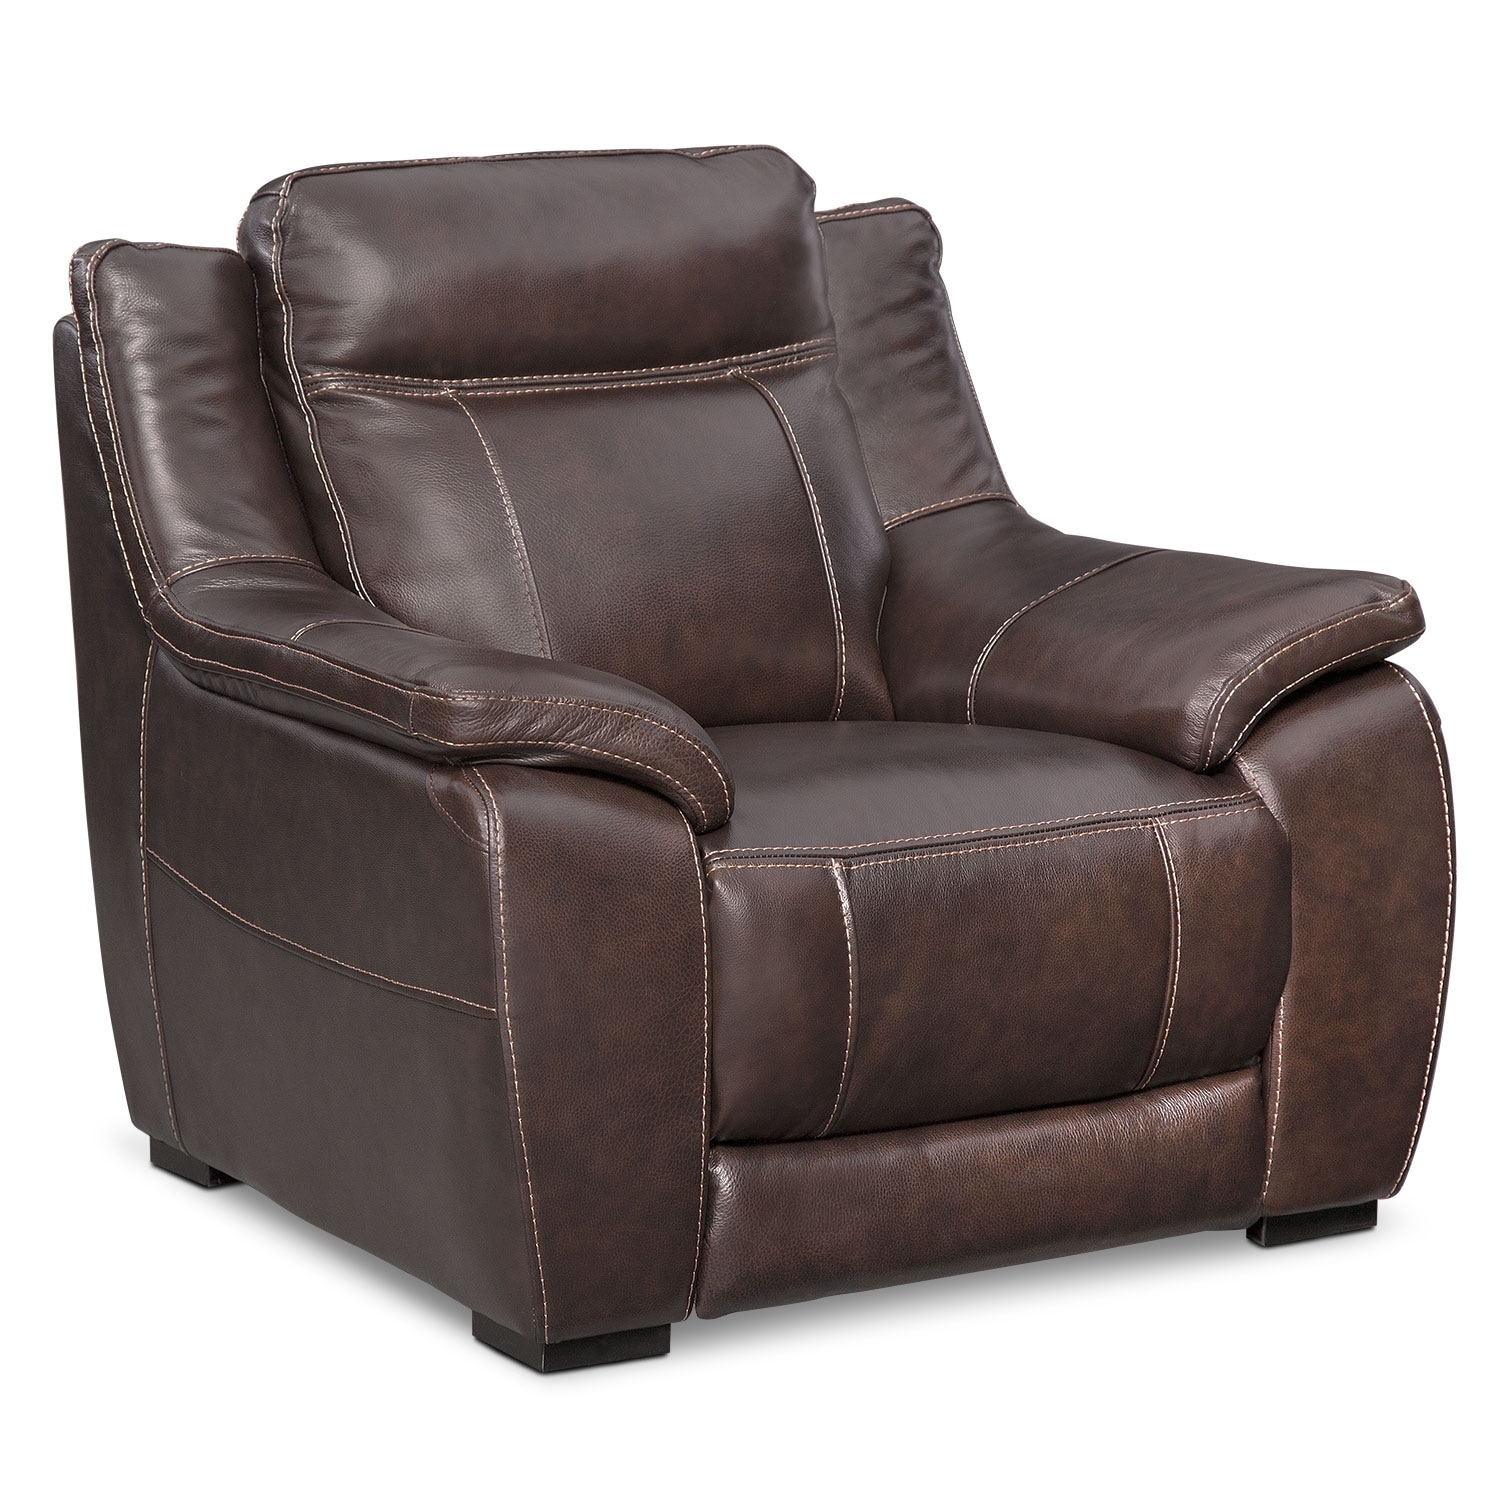 Living Room Furniture - Lido Brown Chair